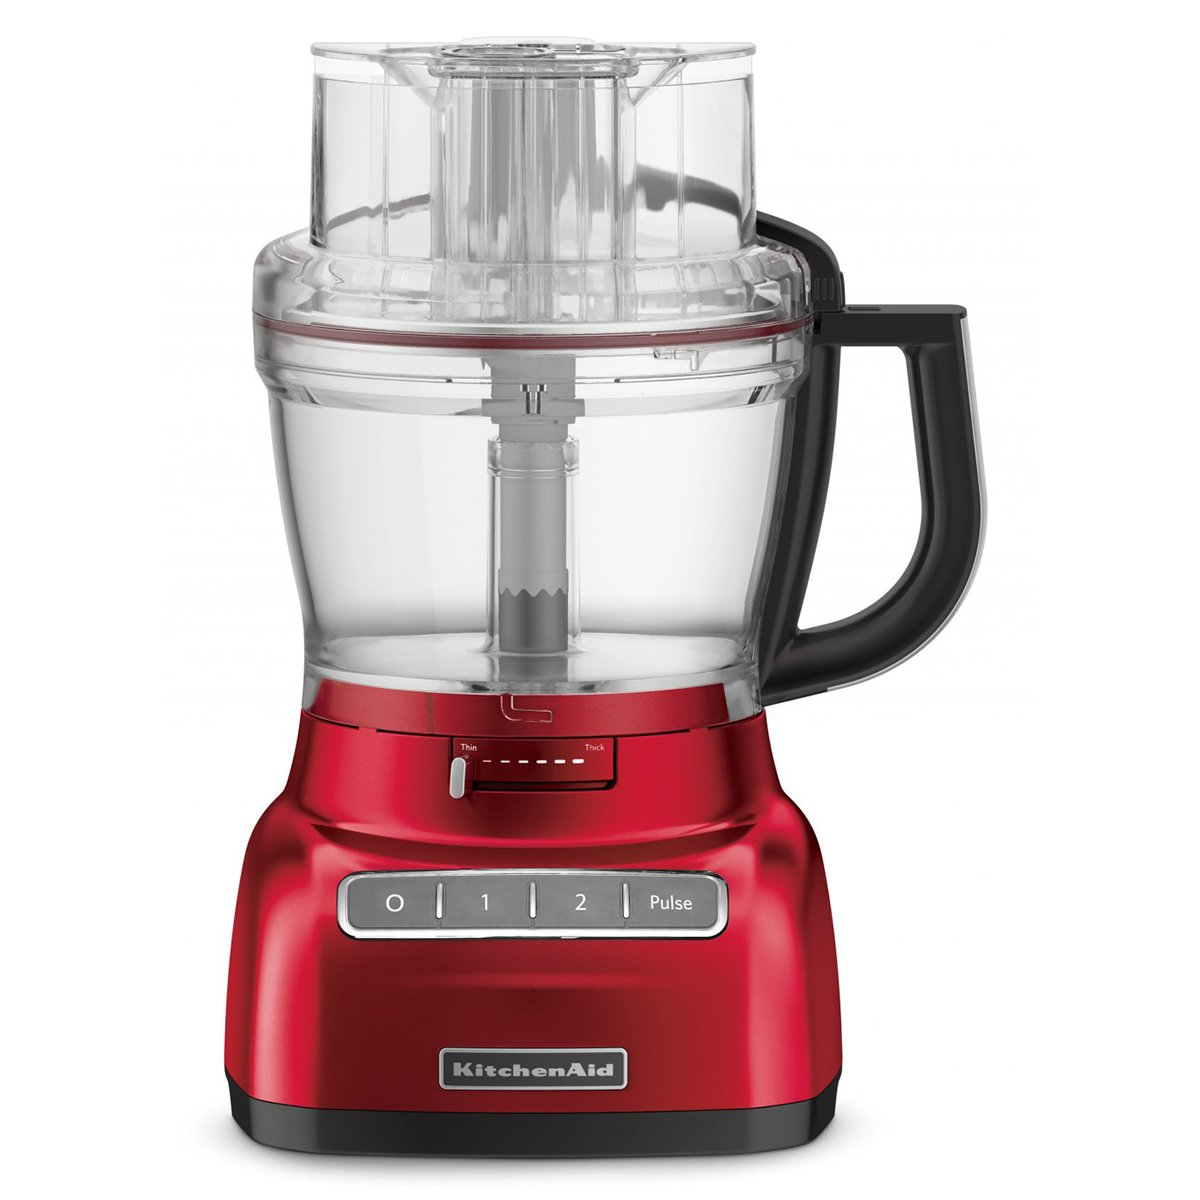 New Kitchenaid Kfp1444aca Platinum Food Processor Candy Apple Red